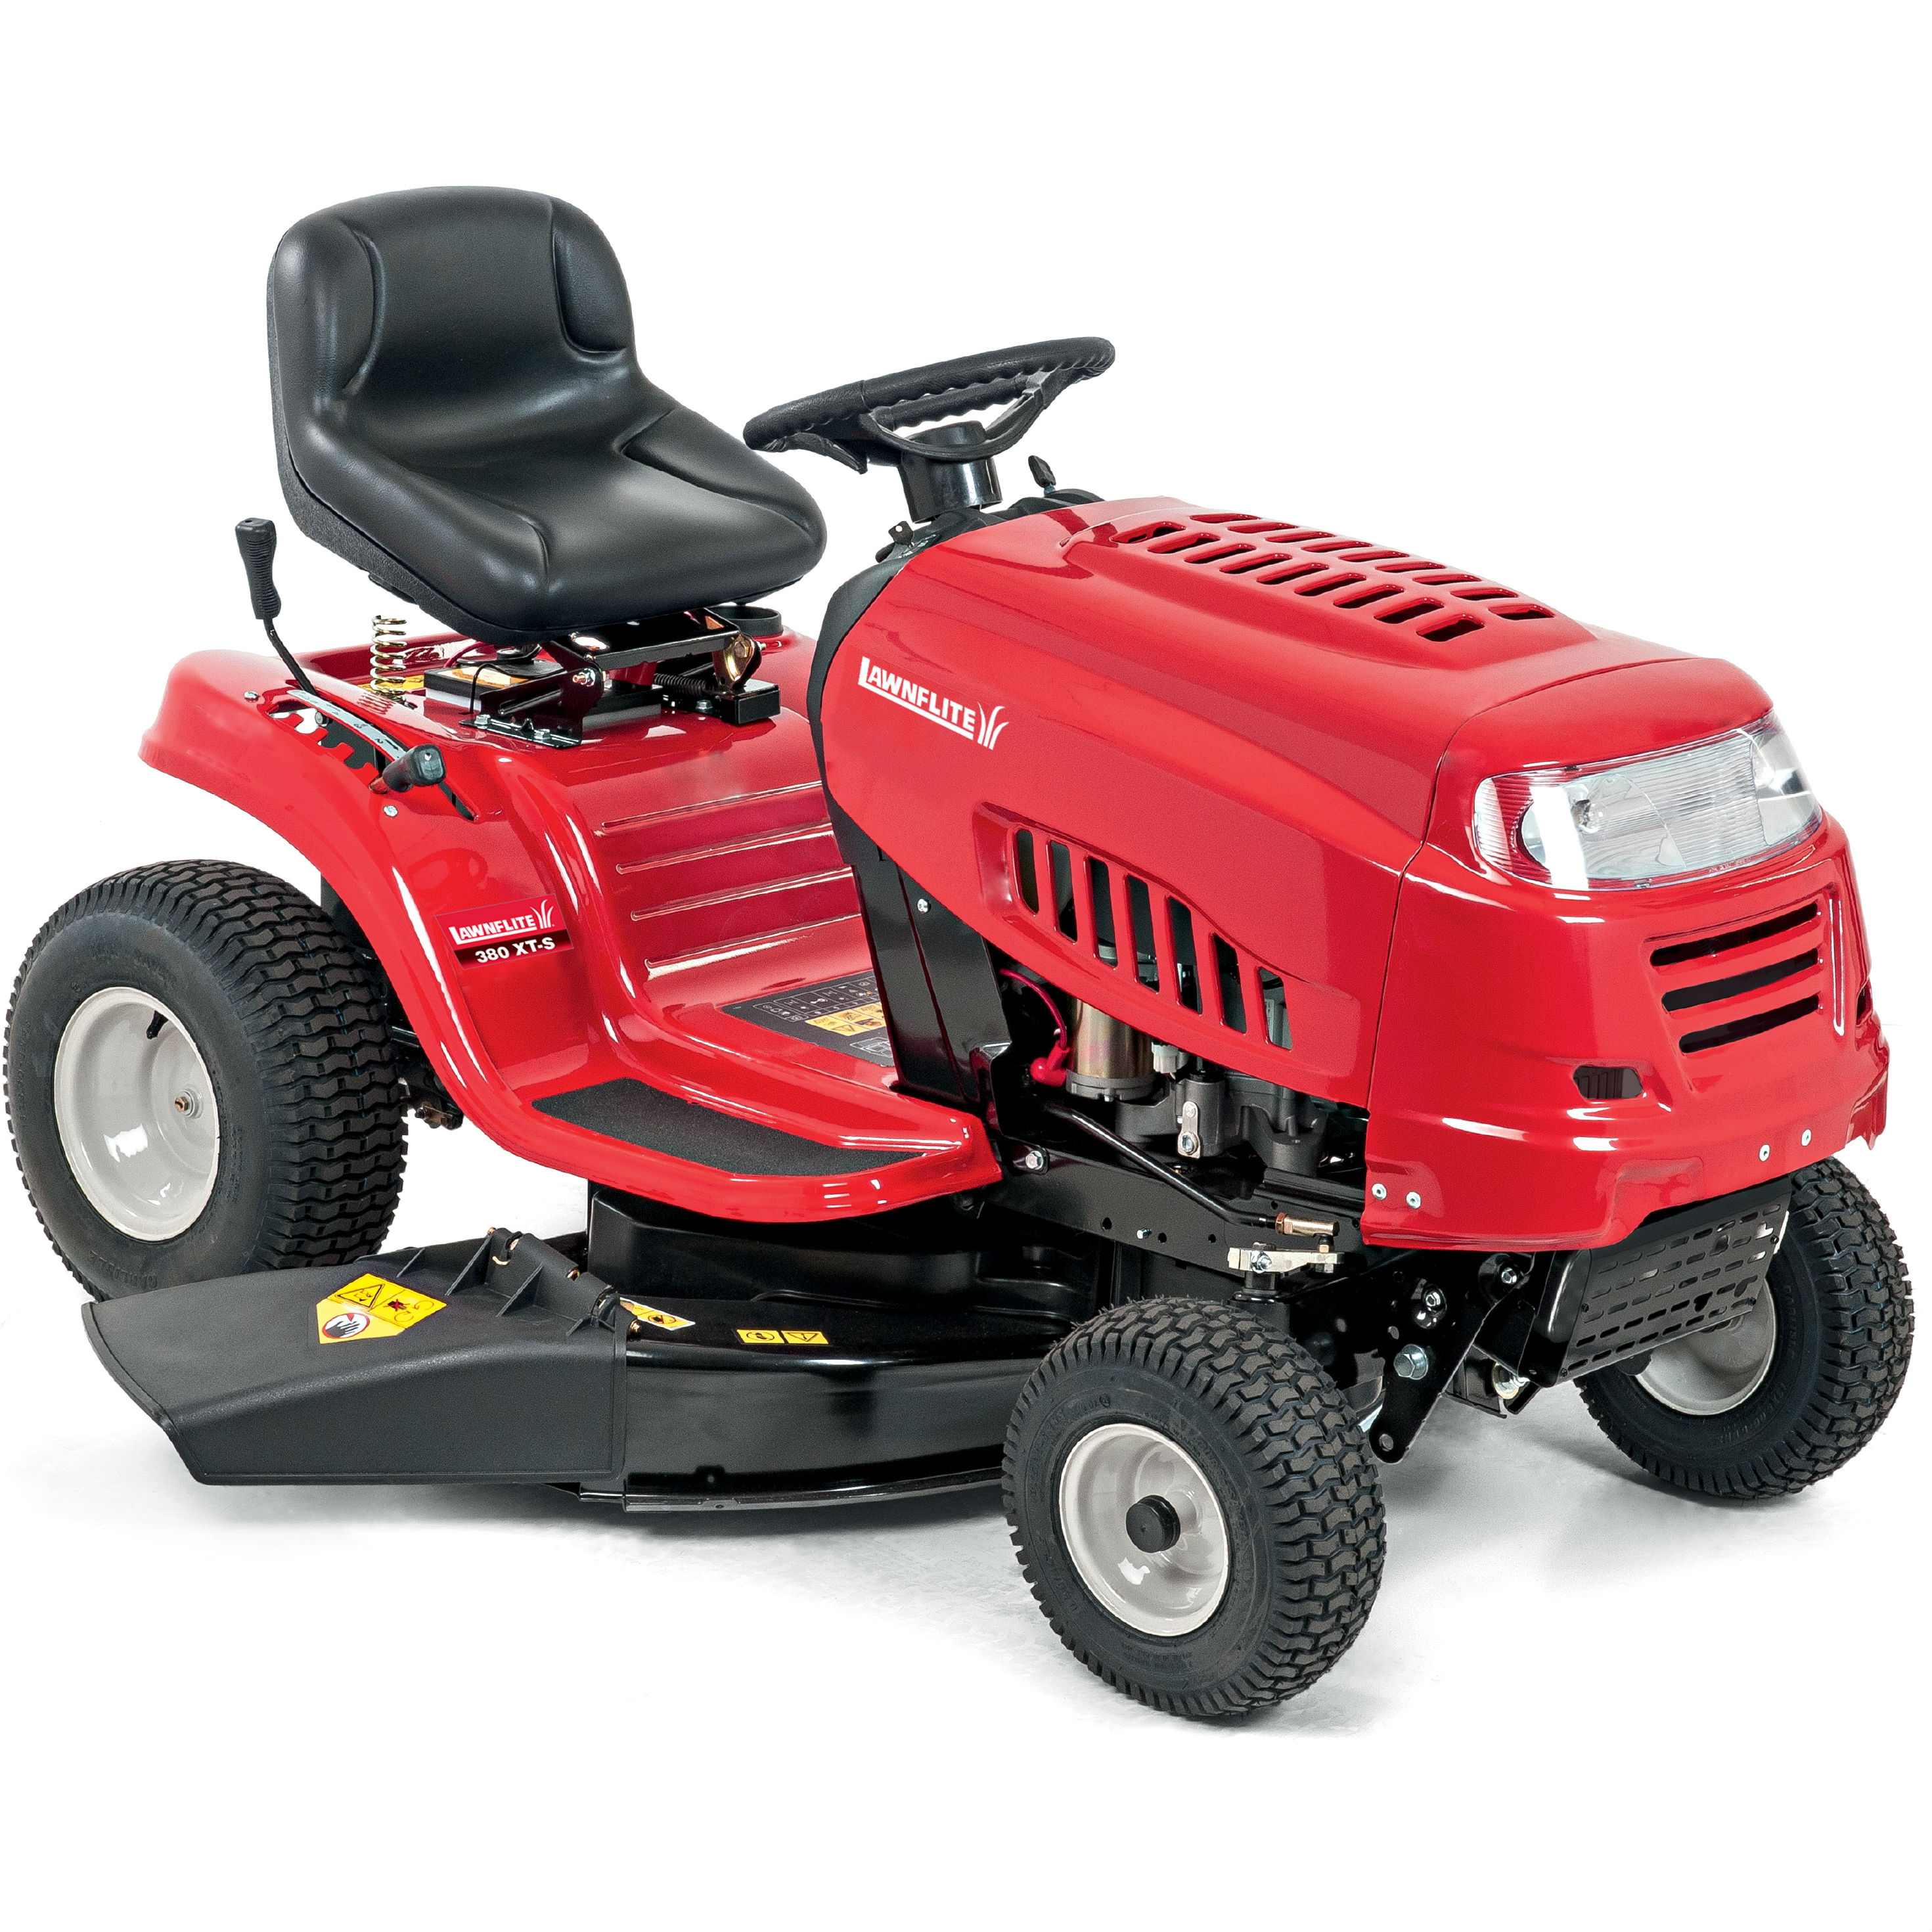 Lawnflite 380 XTS Lawn Tractor